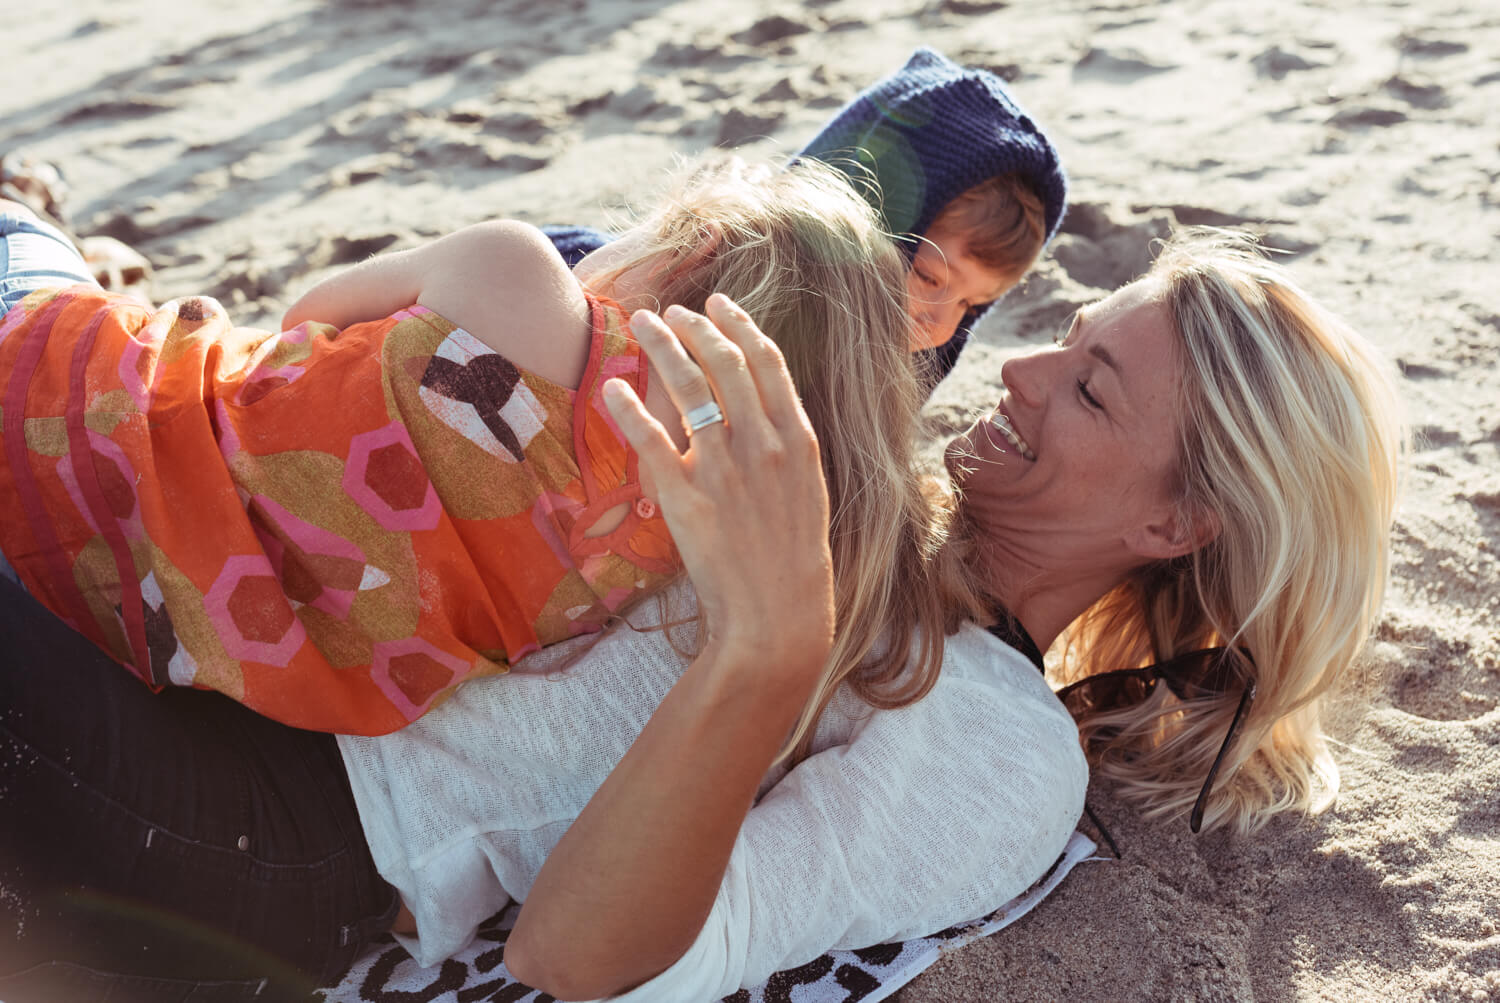 Mother two kid, on sandy beach by lifestyle photographer Tim Cole